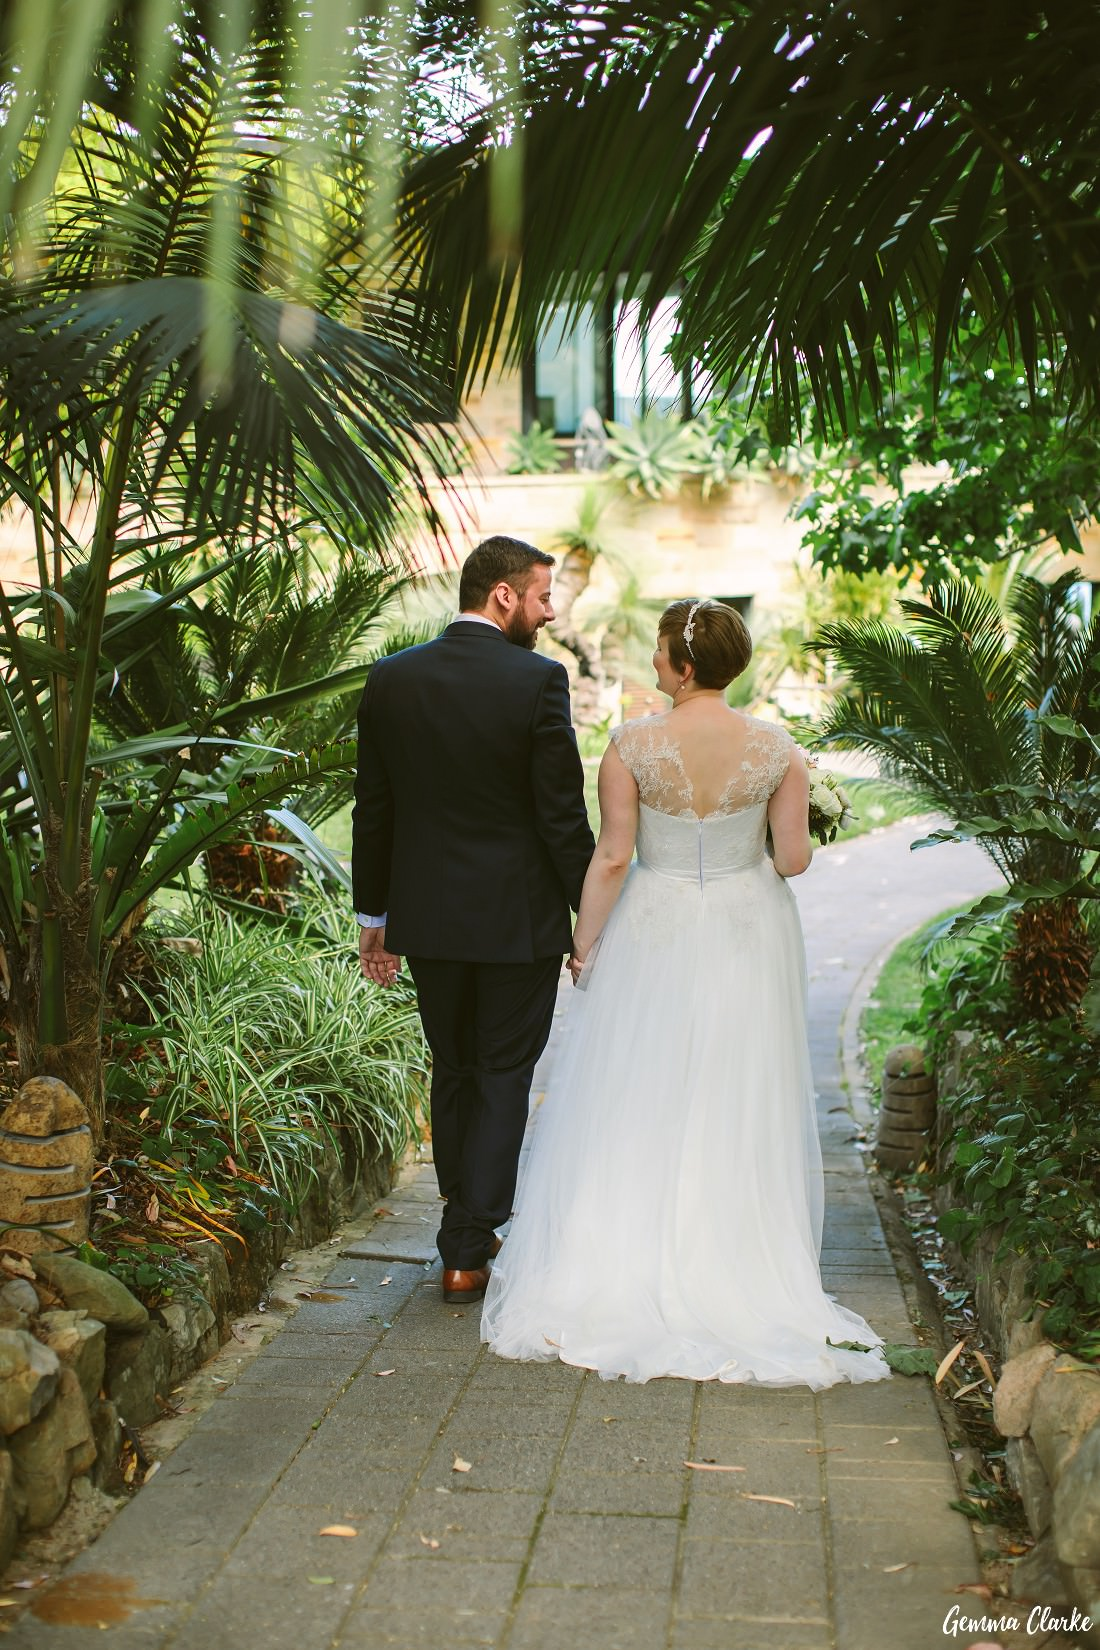 Kaisa and David walk hand in hand through a fern covered walkway at this Tumbling Waters Retreat Wedding